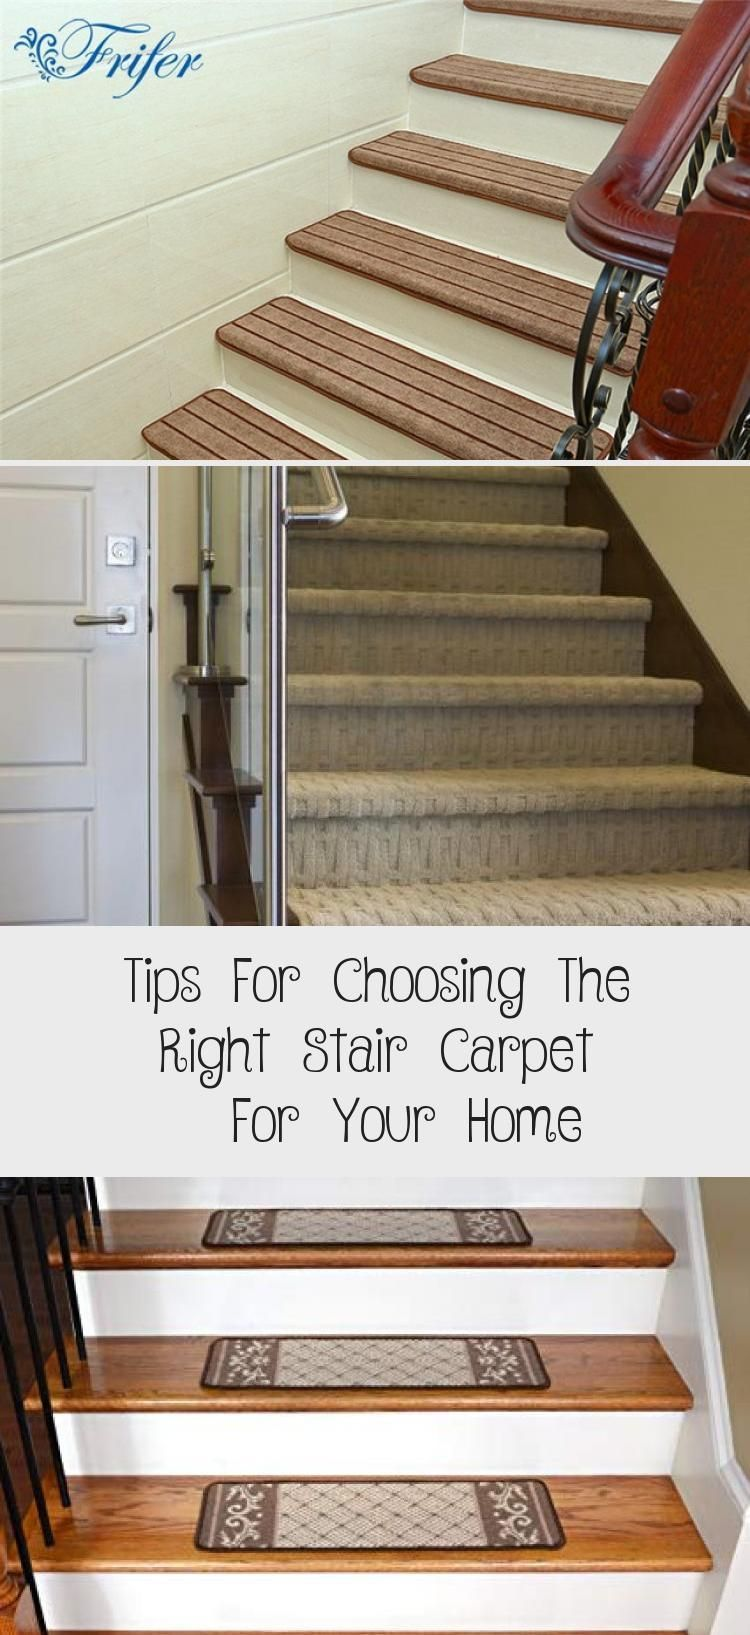 Best Tips For Choosing The Right Stair Carpet For Your Home Modern Staircases Featu Tips For 400 x 300